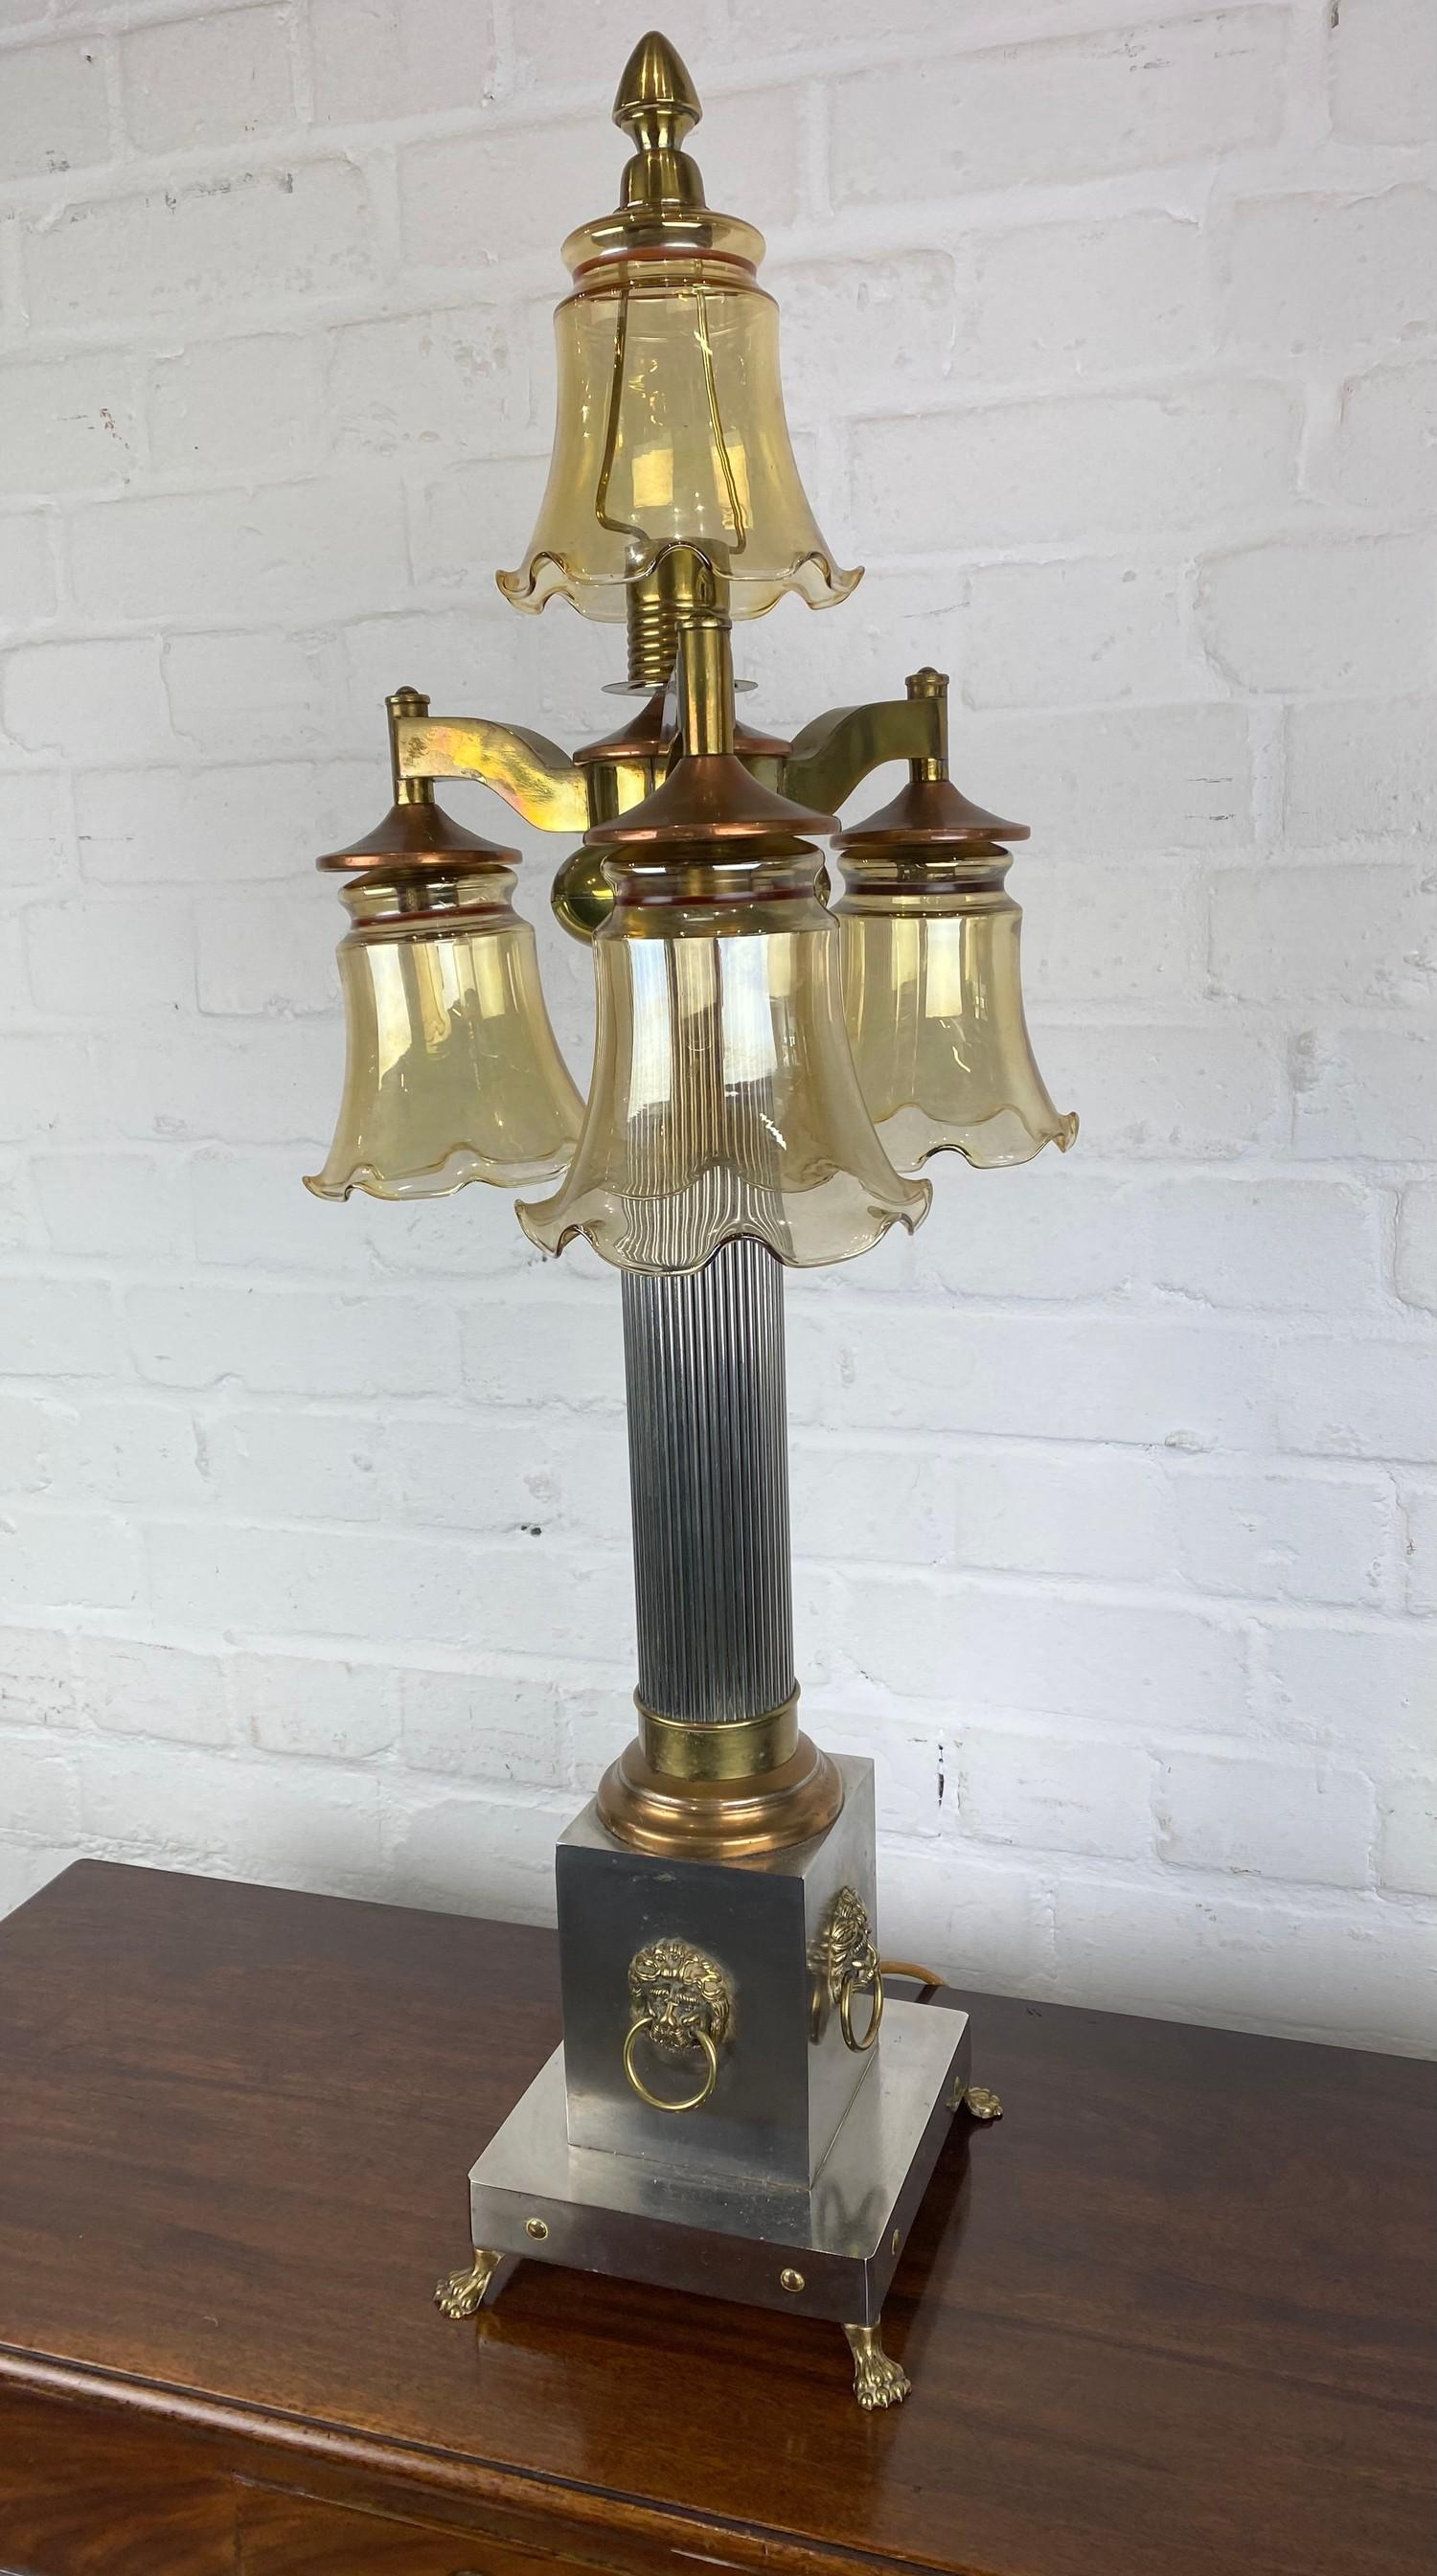 COLUMN HALL LAMP, early 20th century English silver plate, copper and brass four branch, with lion - Image 2 of 8